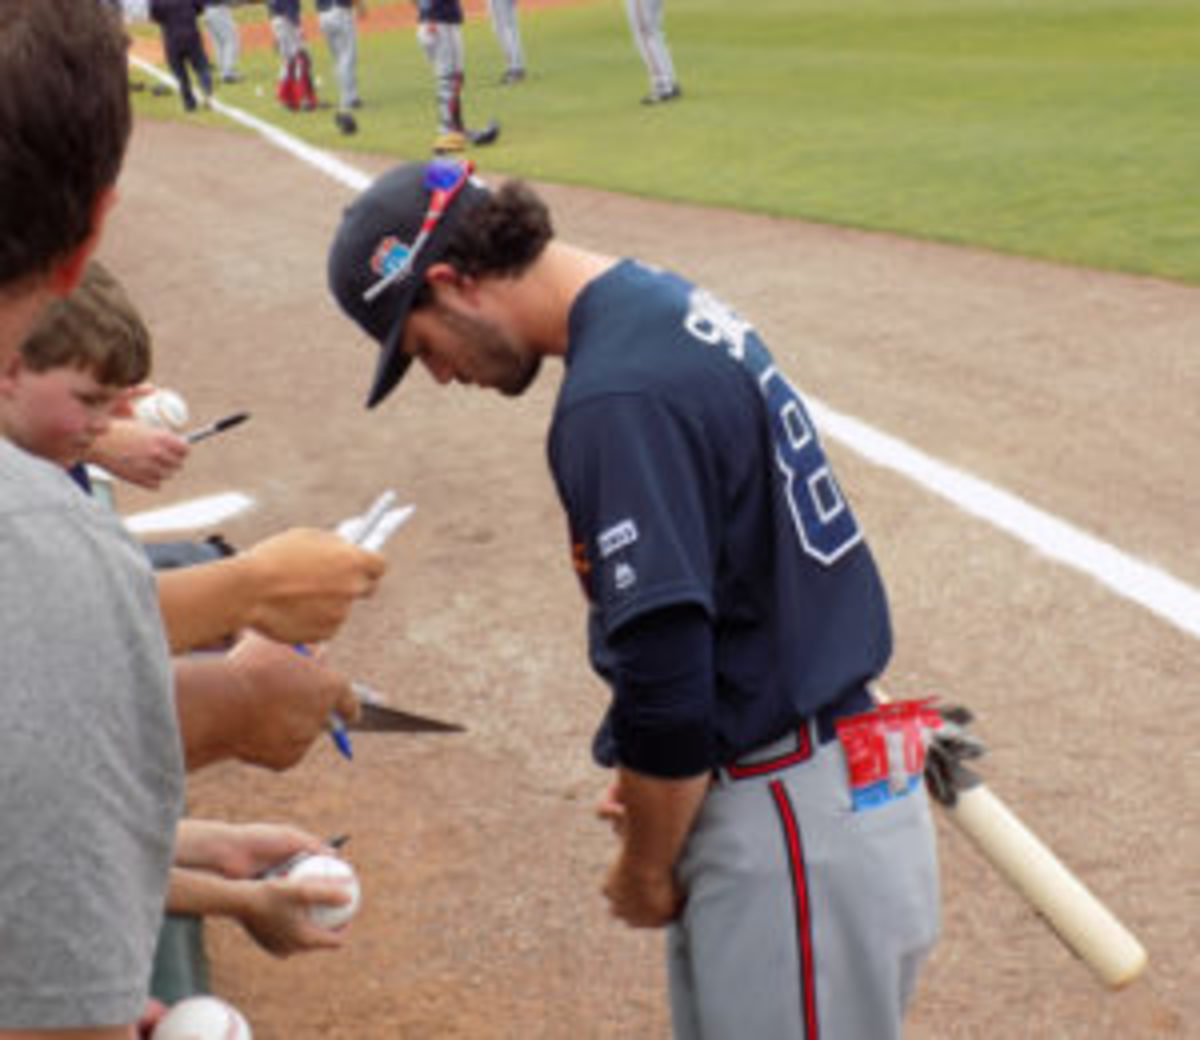 Atlanta Braves shortstop Dansby Swanson signs autographs for fans at spring training. (Barry Blair photos)